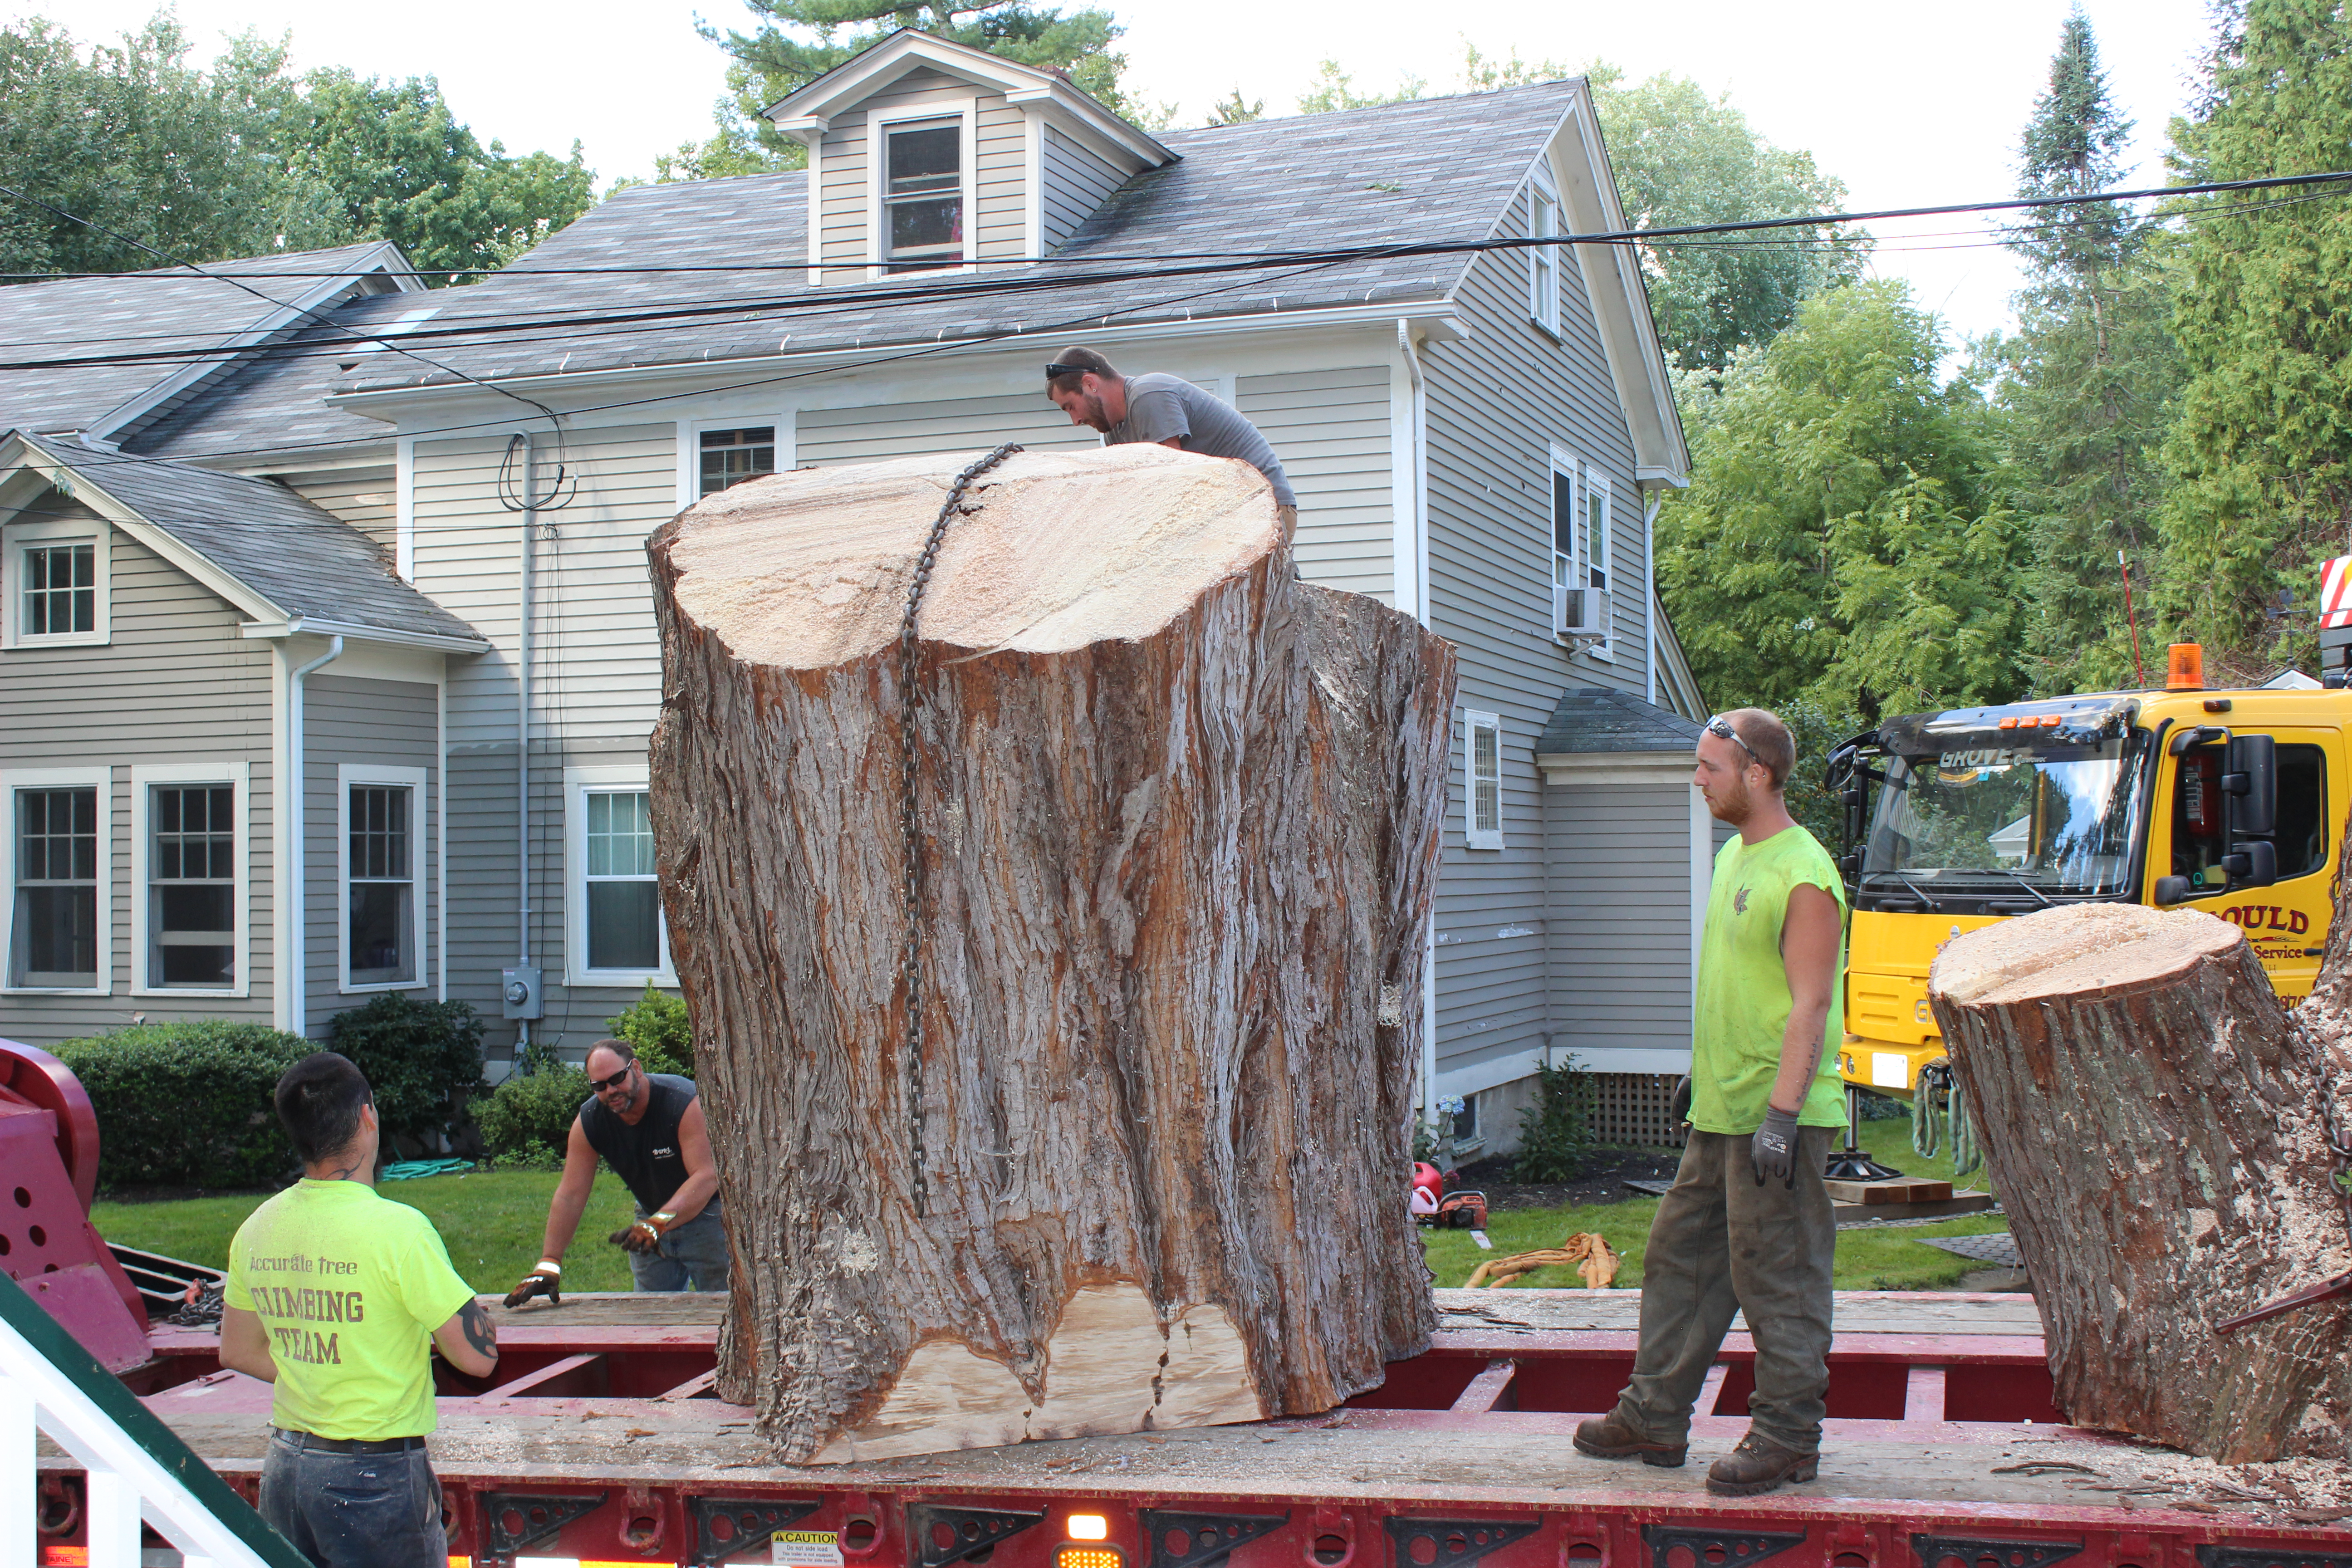 Transporting the Stump